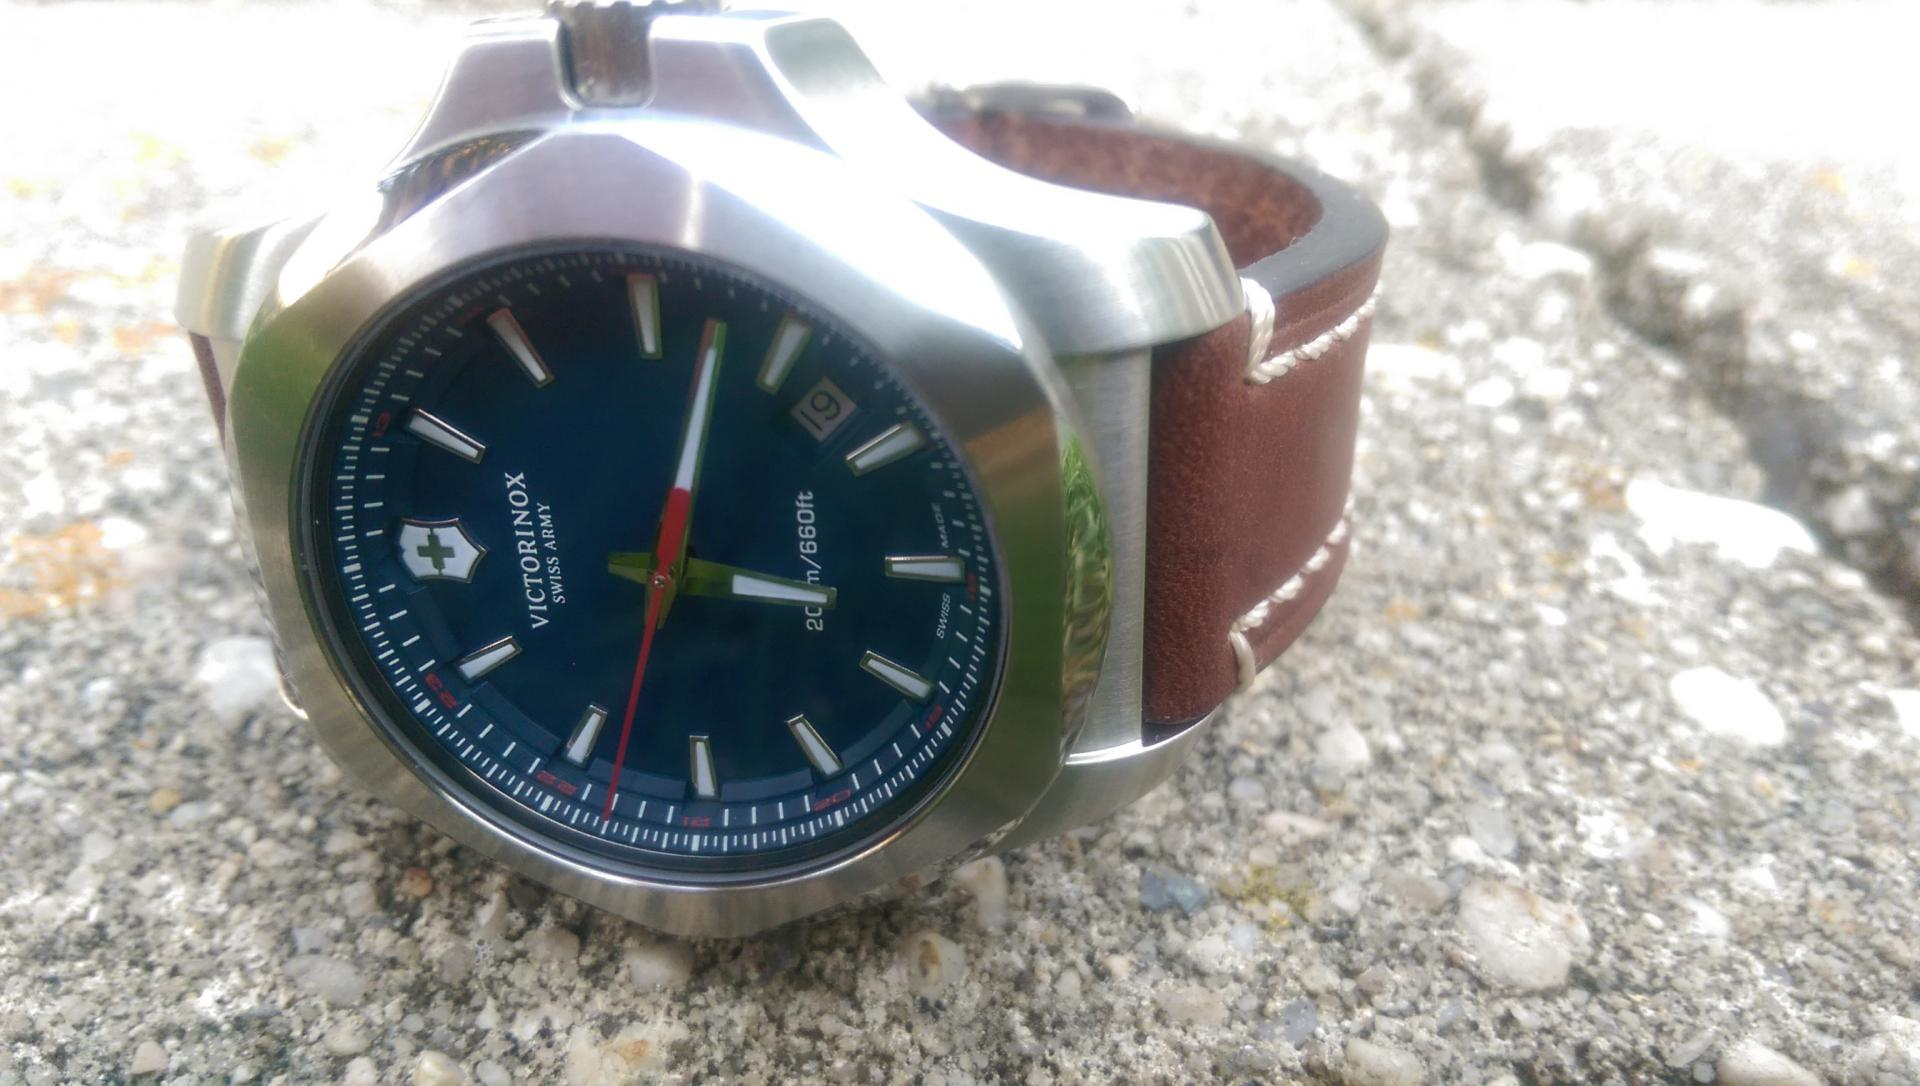 What do you think of the Victorinox I.N.O.X?-uploadfromtaptalk1448010332404.jpg